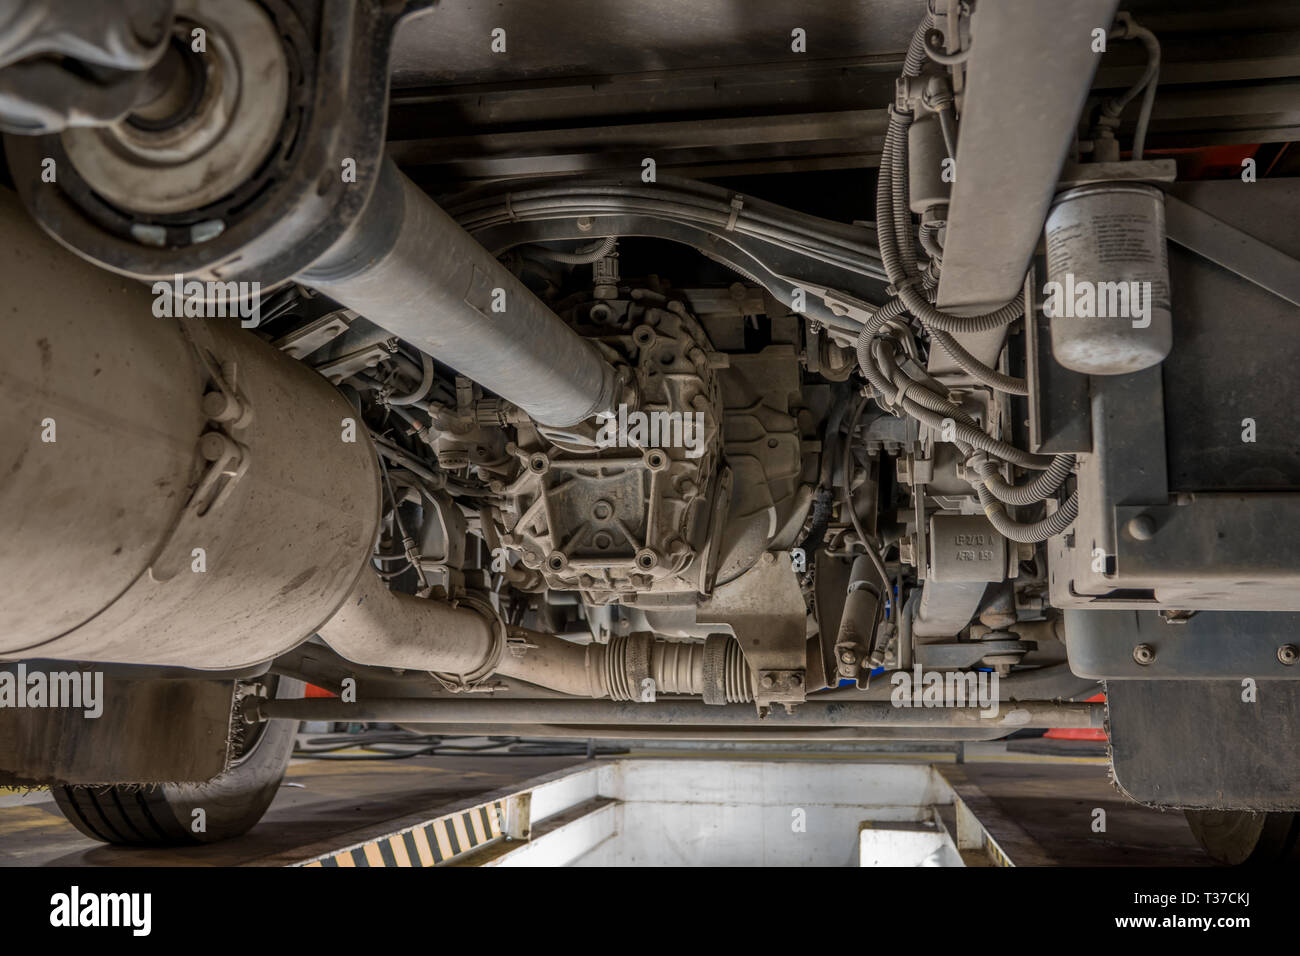 View of front axle and gearbox of a small truck from a maintenance pit. - Stock Image